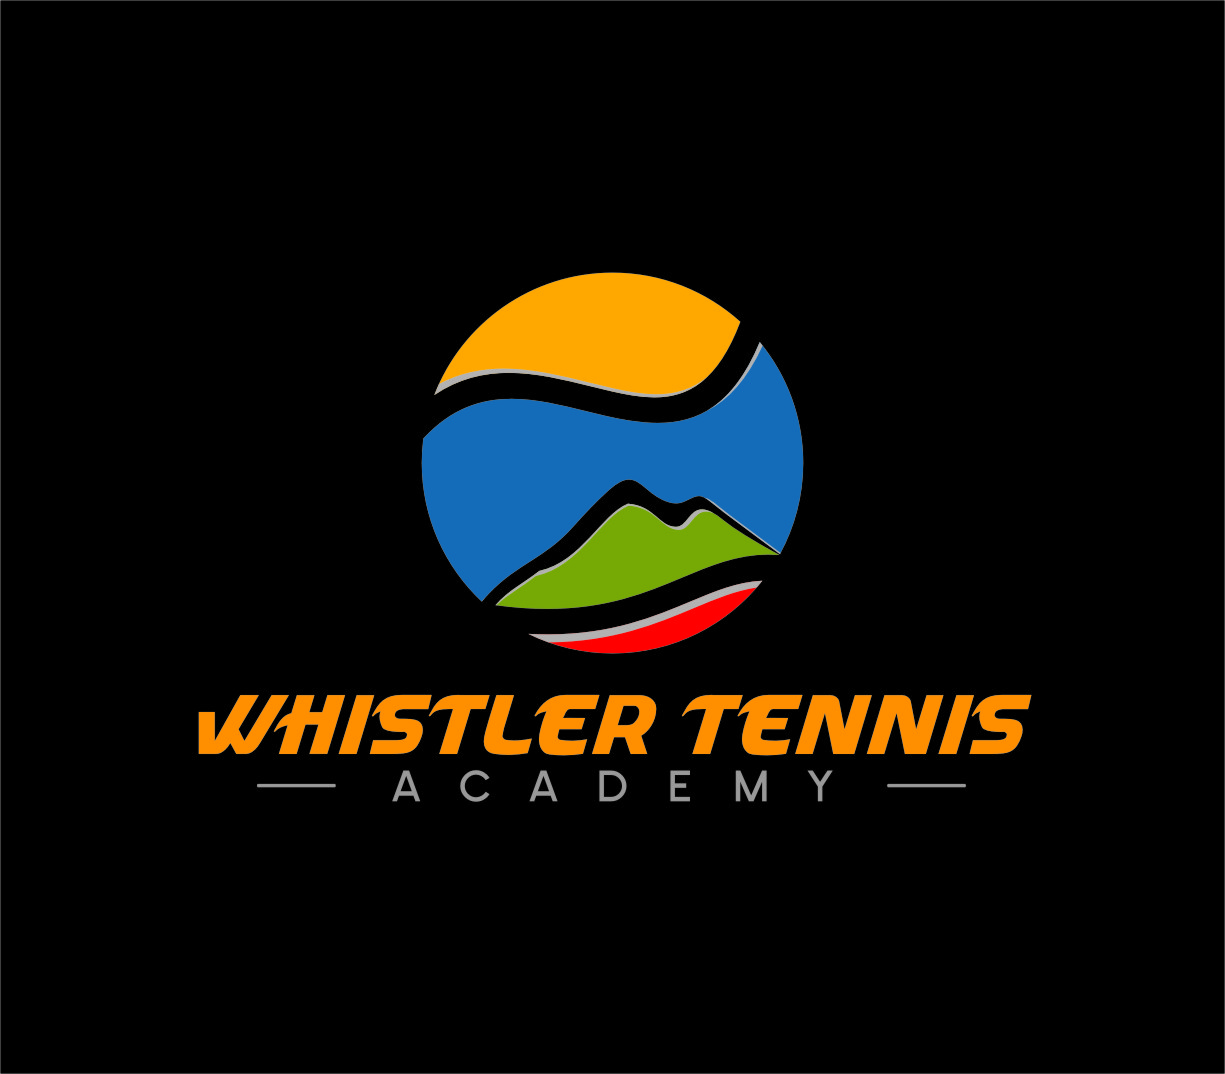 Logo Design by Ngepet_art - Entry No. 213 in the Logo Design Contest Imaginative Logo Design for Whistler Tennis Academy.